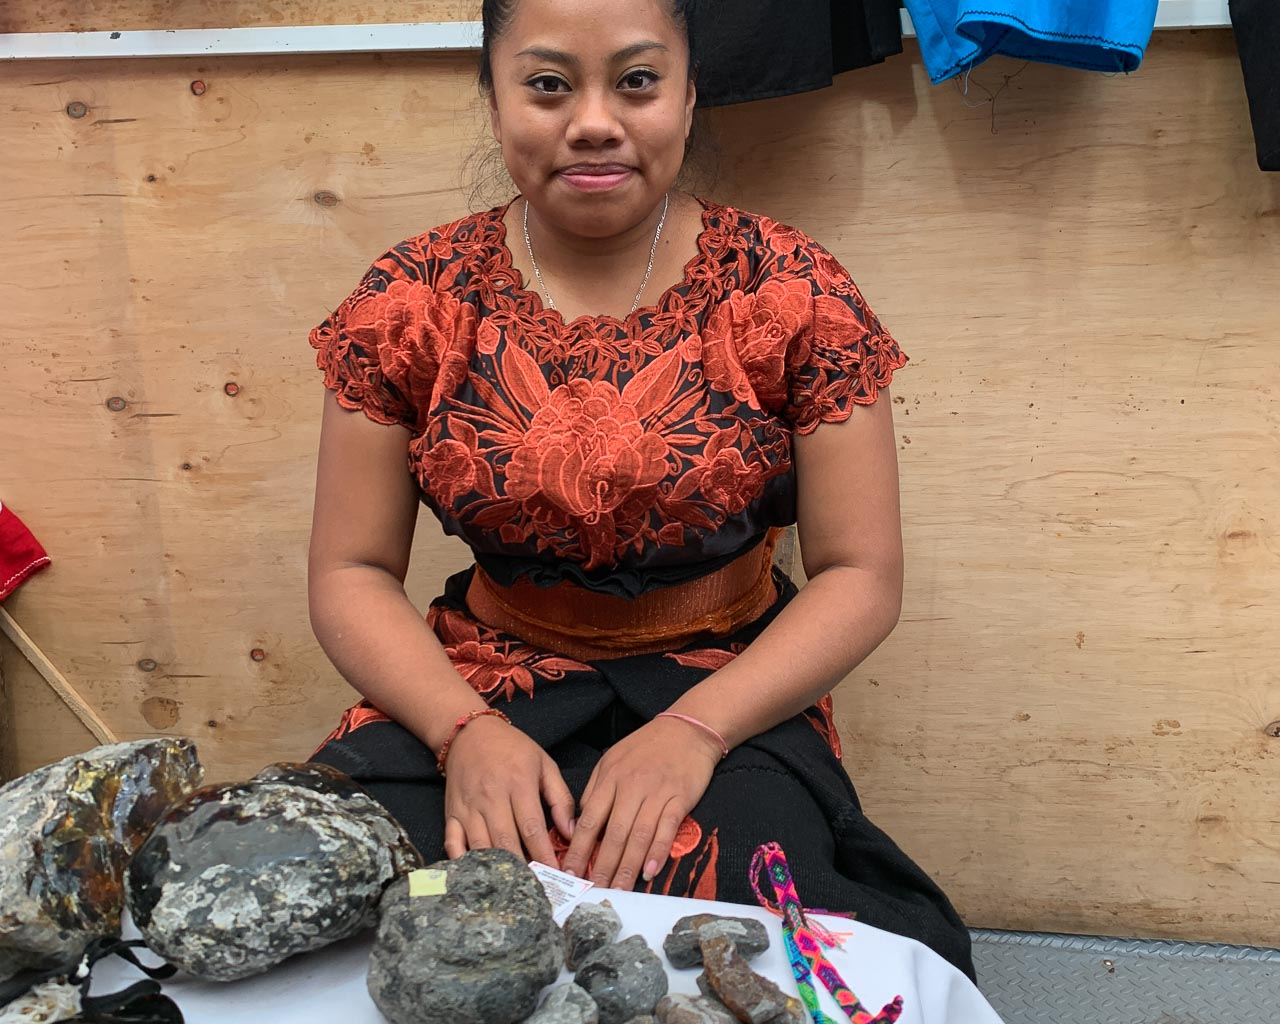 Multi-generational techniques are involved in fair trade jewelry making